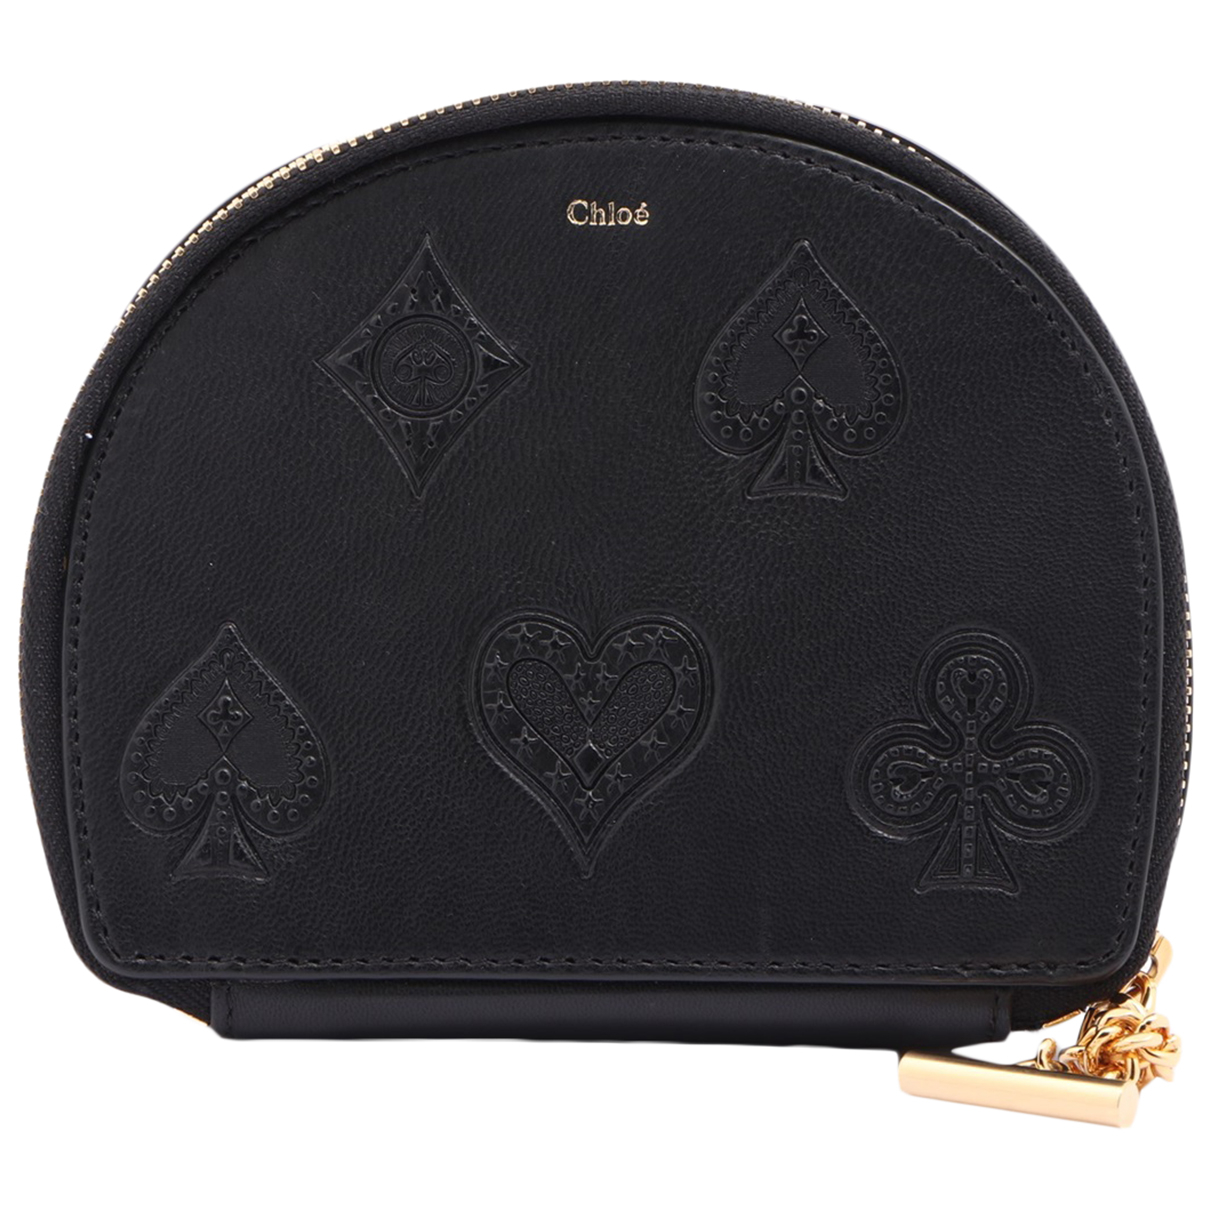 Chloé N Black Leather Purses, wallet & cases for Women N